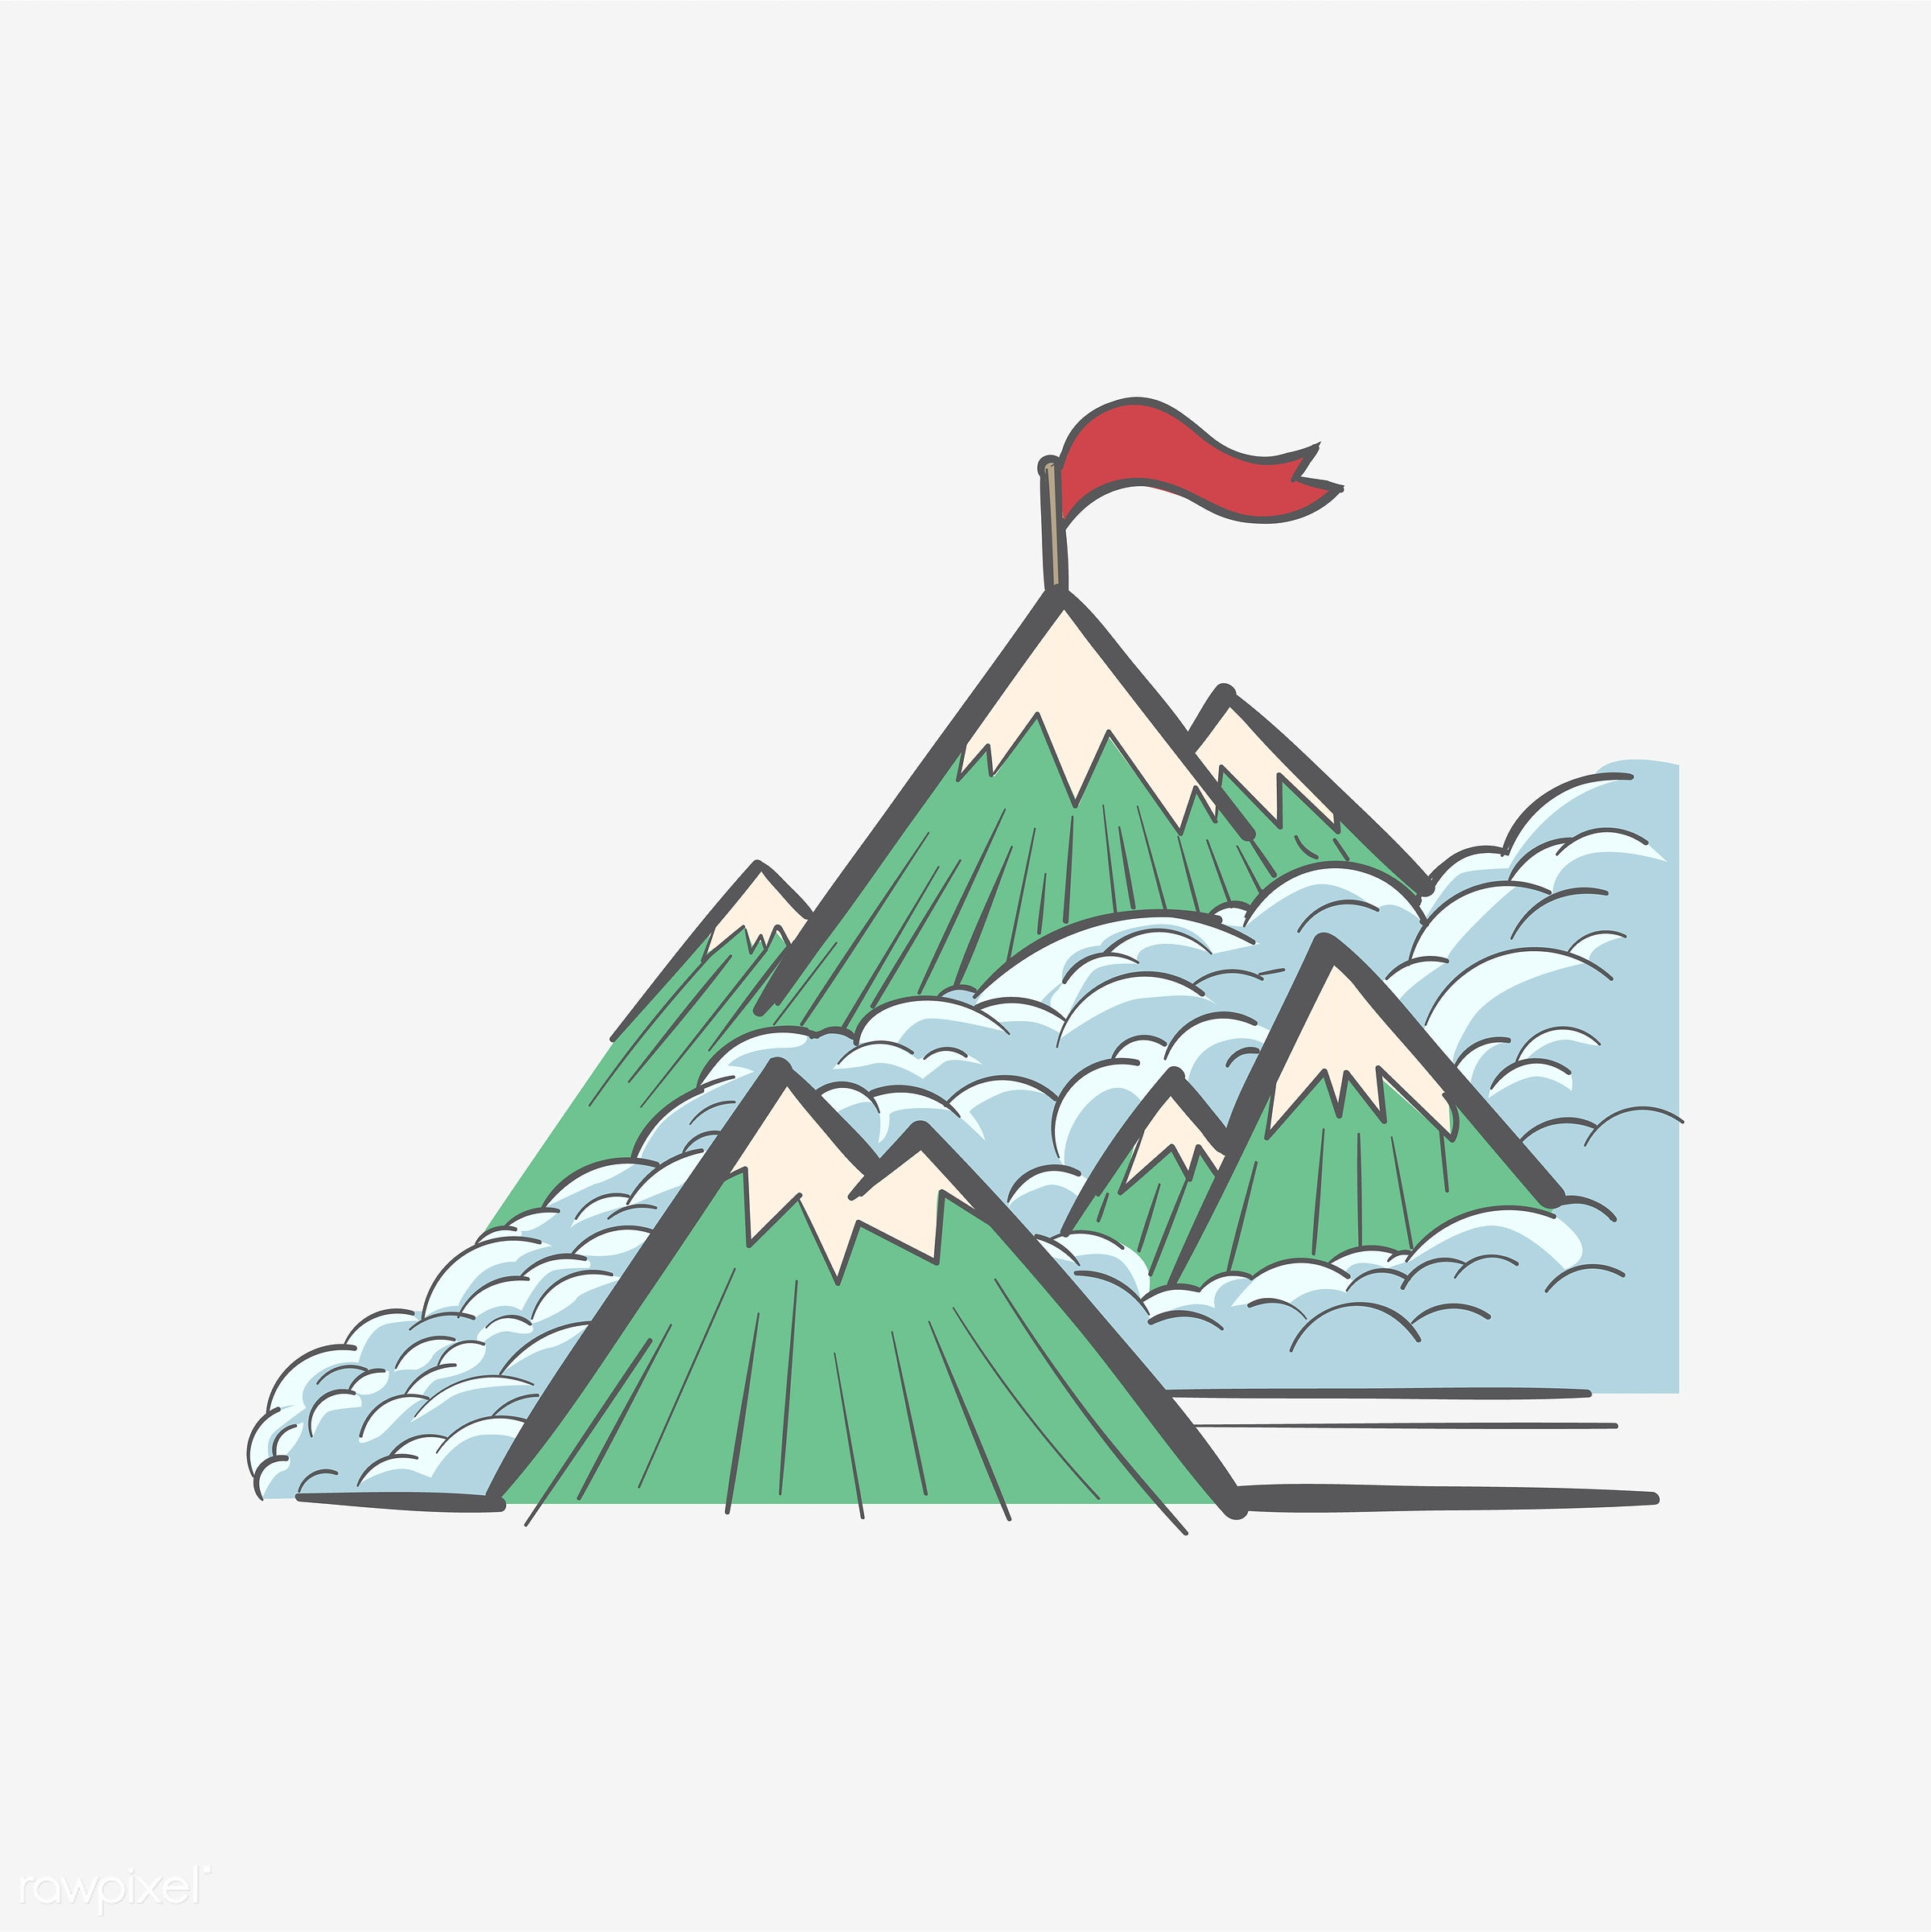 Mountain tops - aim, art, artwork, creative, creativity, design, development, draw, drawing, drawn, graphic, grow, growth,...